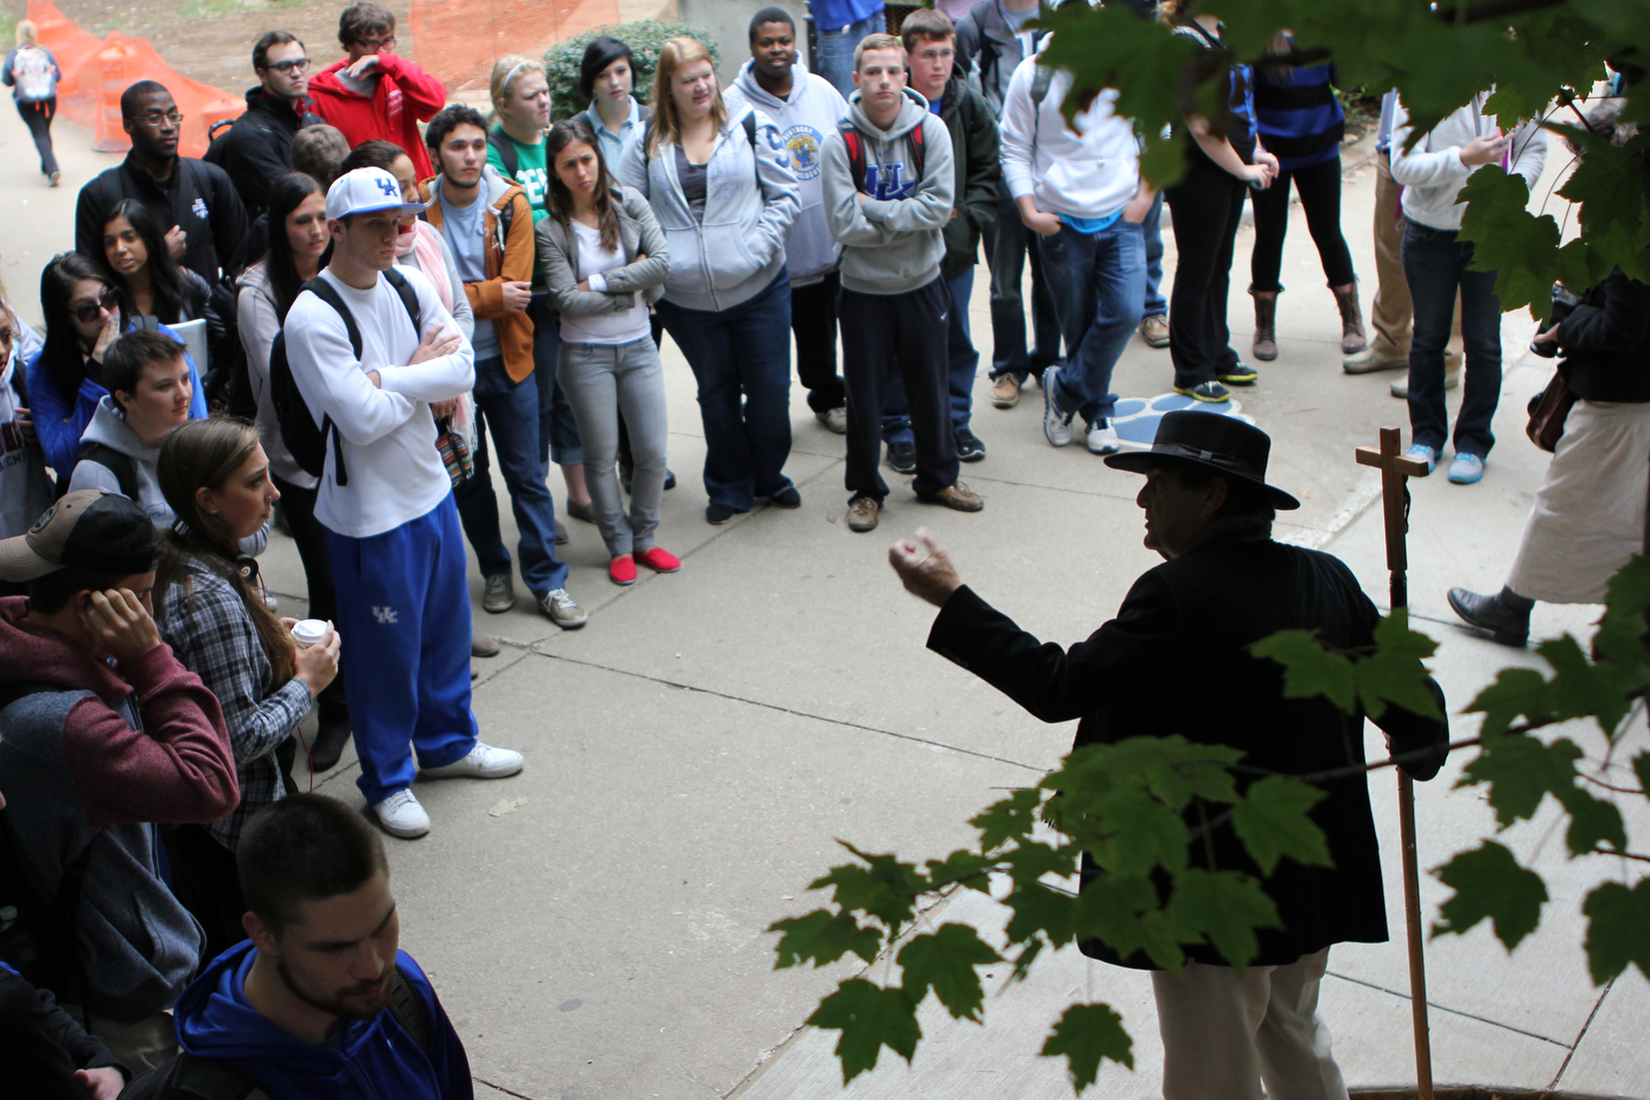 Dozens of students watch on as Brother Jed Smock preaches in the free speech area in front of the University of Kentucky's student center in Lexington, Ky.